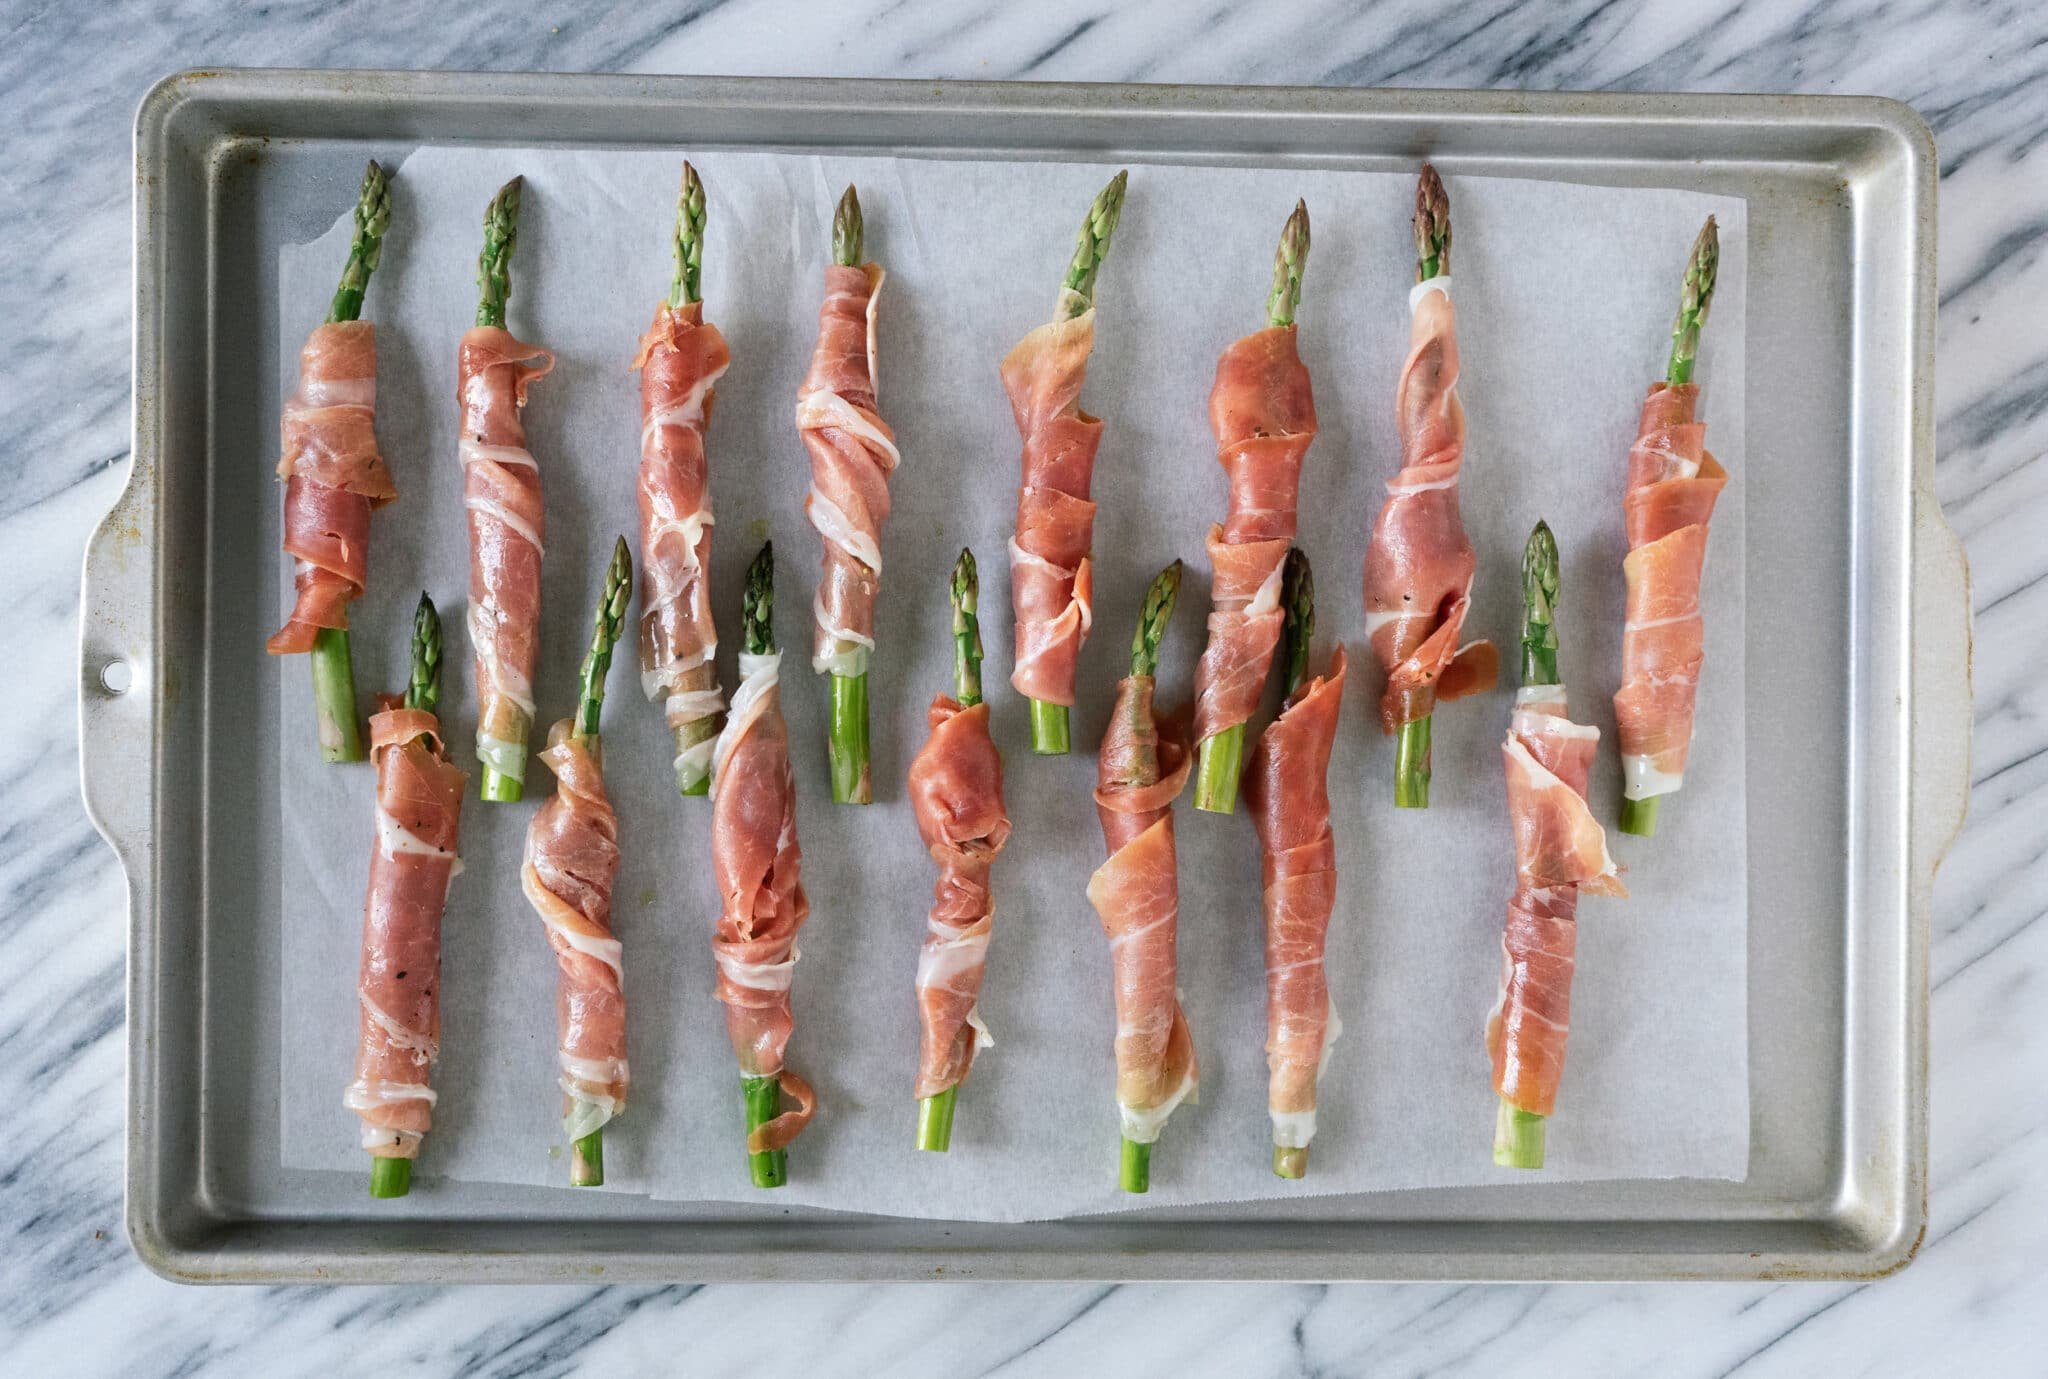 Above view of prosciutto wrapped asparagus on a baking sheet prior to being baked